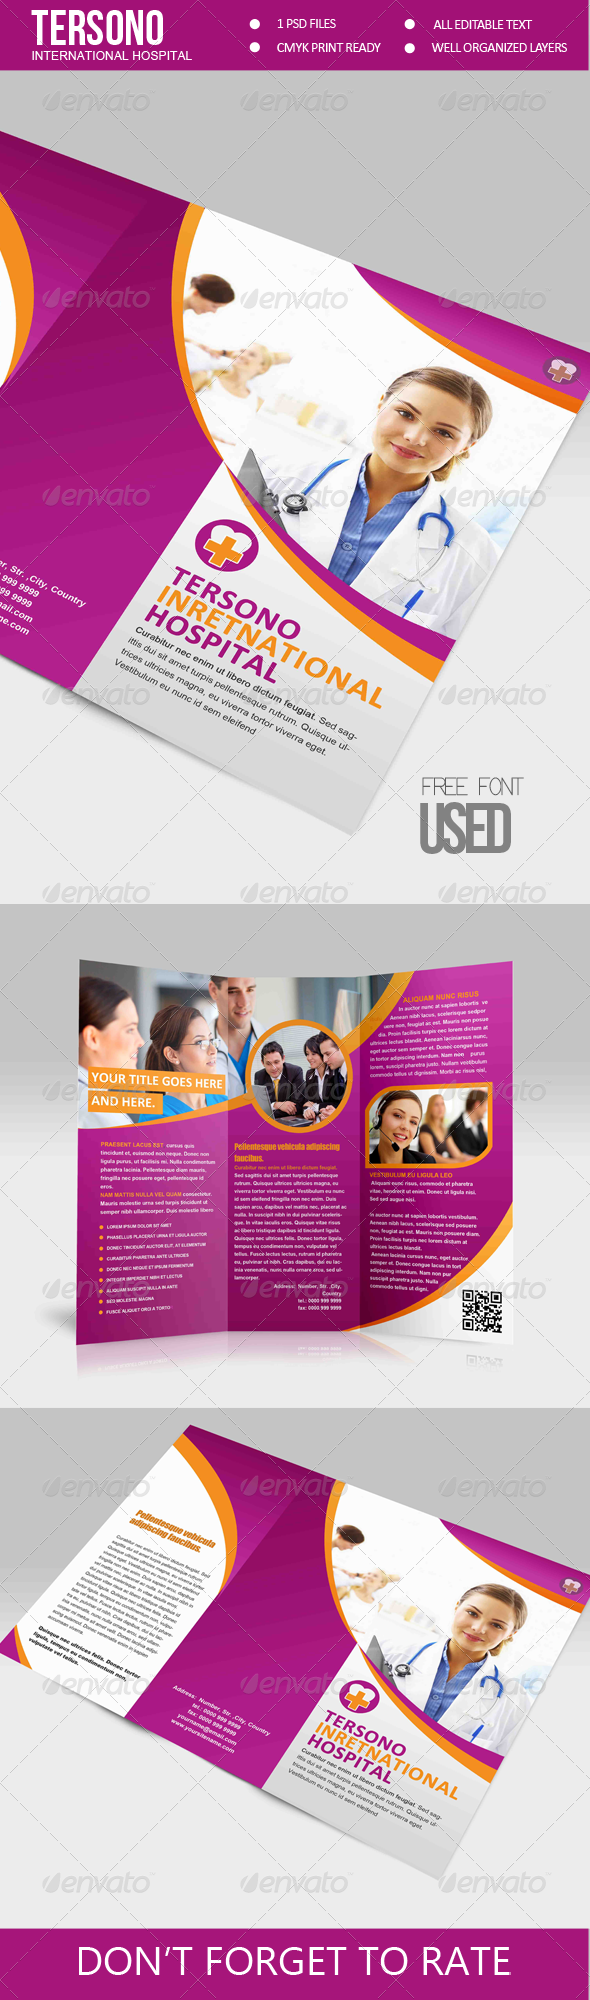 Trifold Brochure - Tersono Medical Template - Corporate Brochures